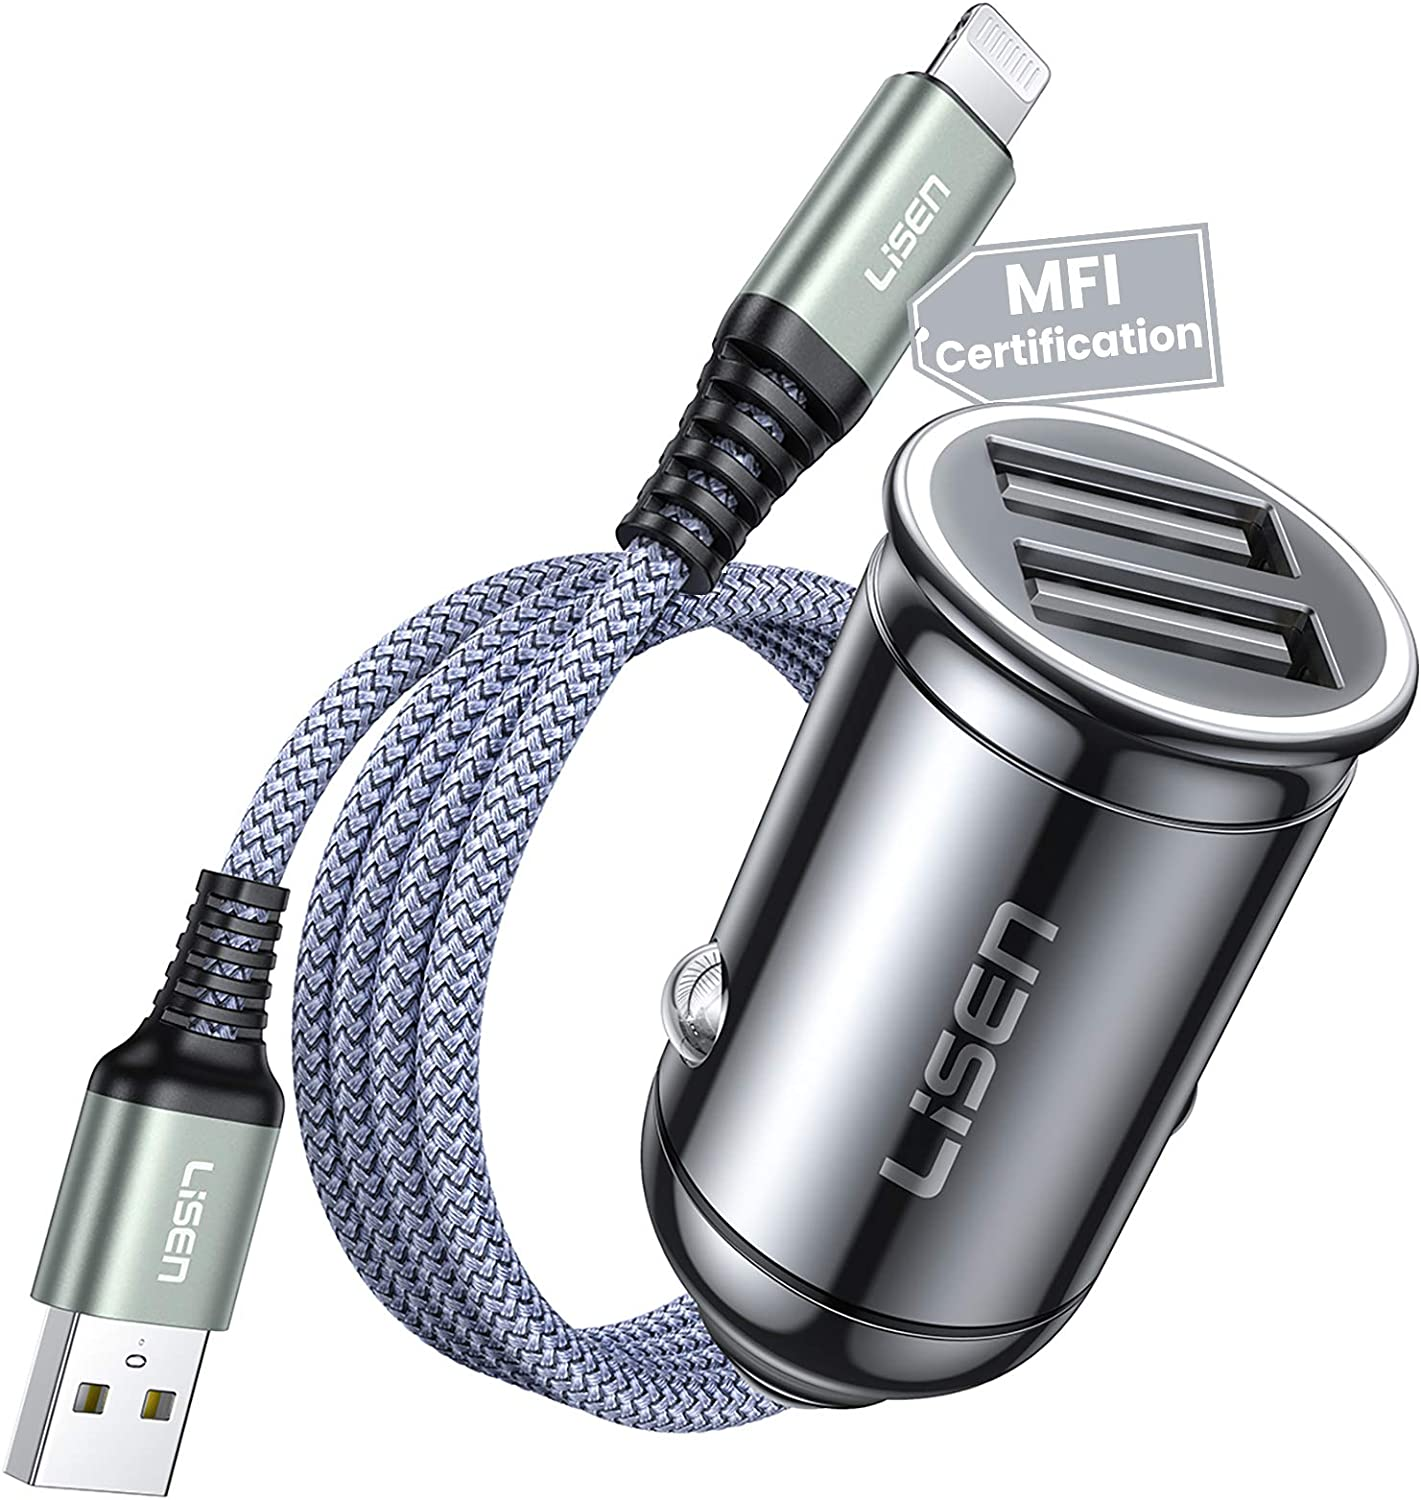 iPhone Car Charger Adapter, 4.8A Metal Lightning Car Charger[MFI Certified Cable], LISEN Dual Port Fast Cigarette Lighter USB Charger Flush Fit Compatible with iPhone 12/11/XS Max/X/8/Plus, iPad&More